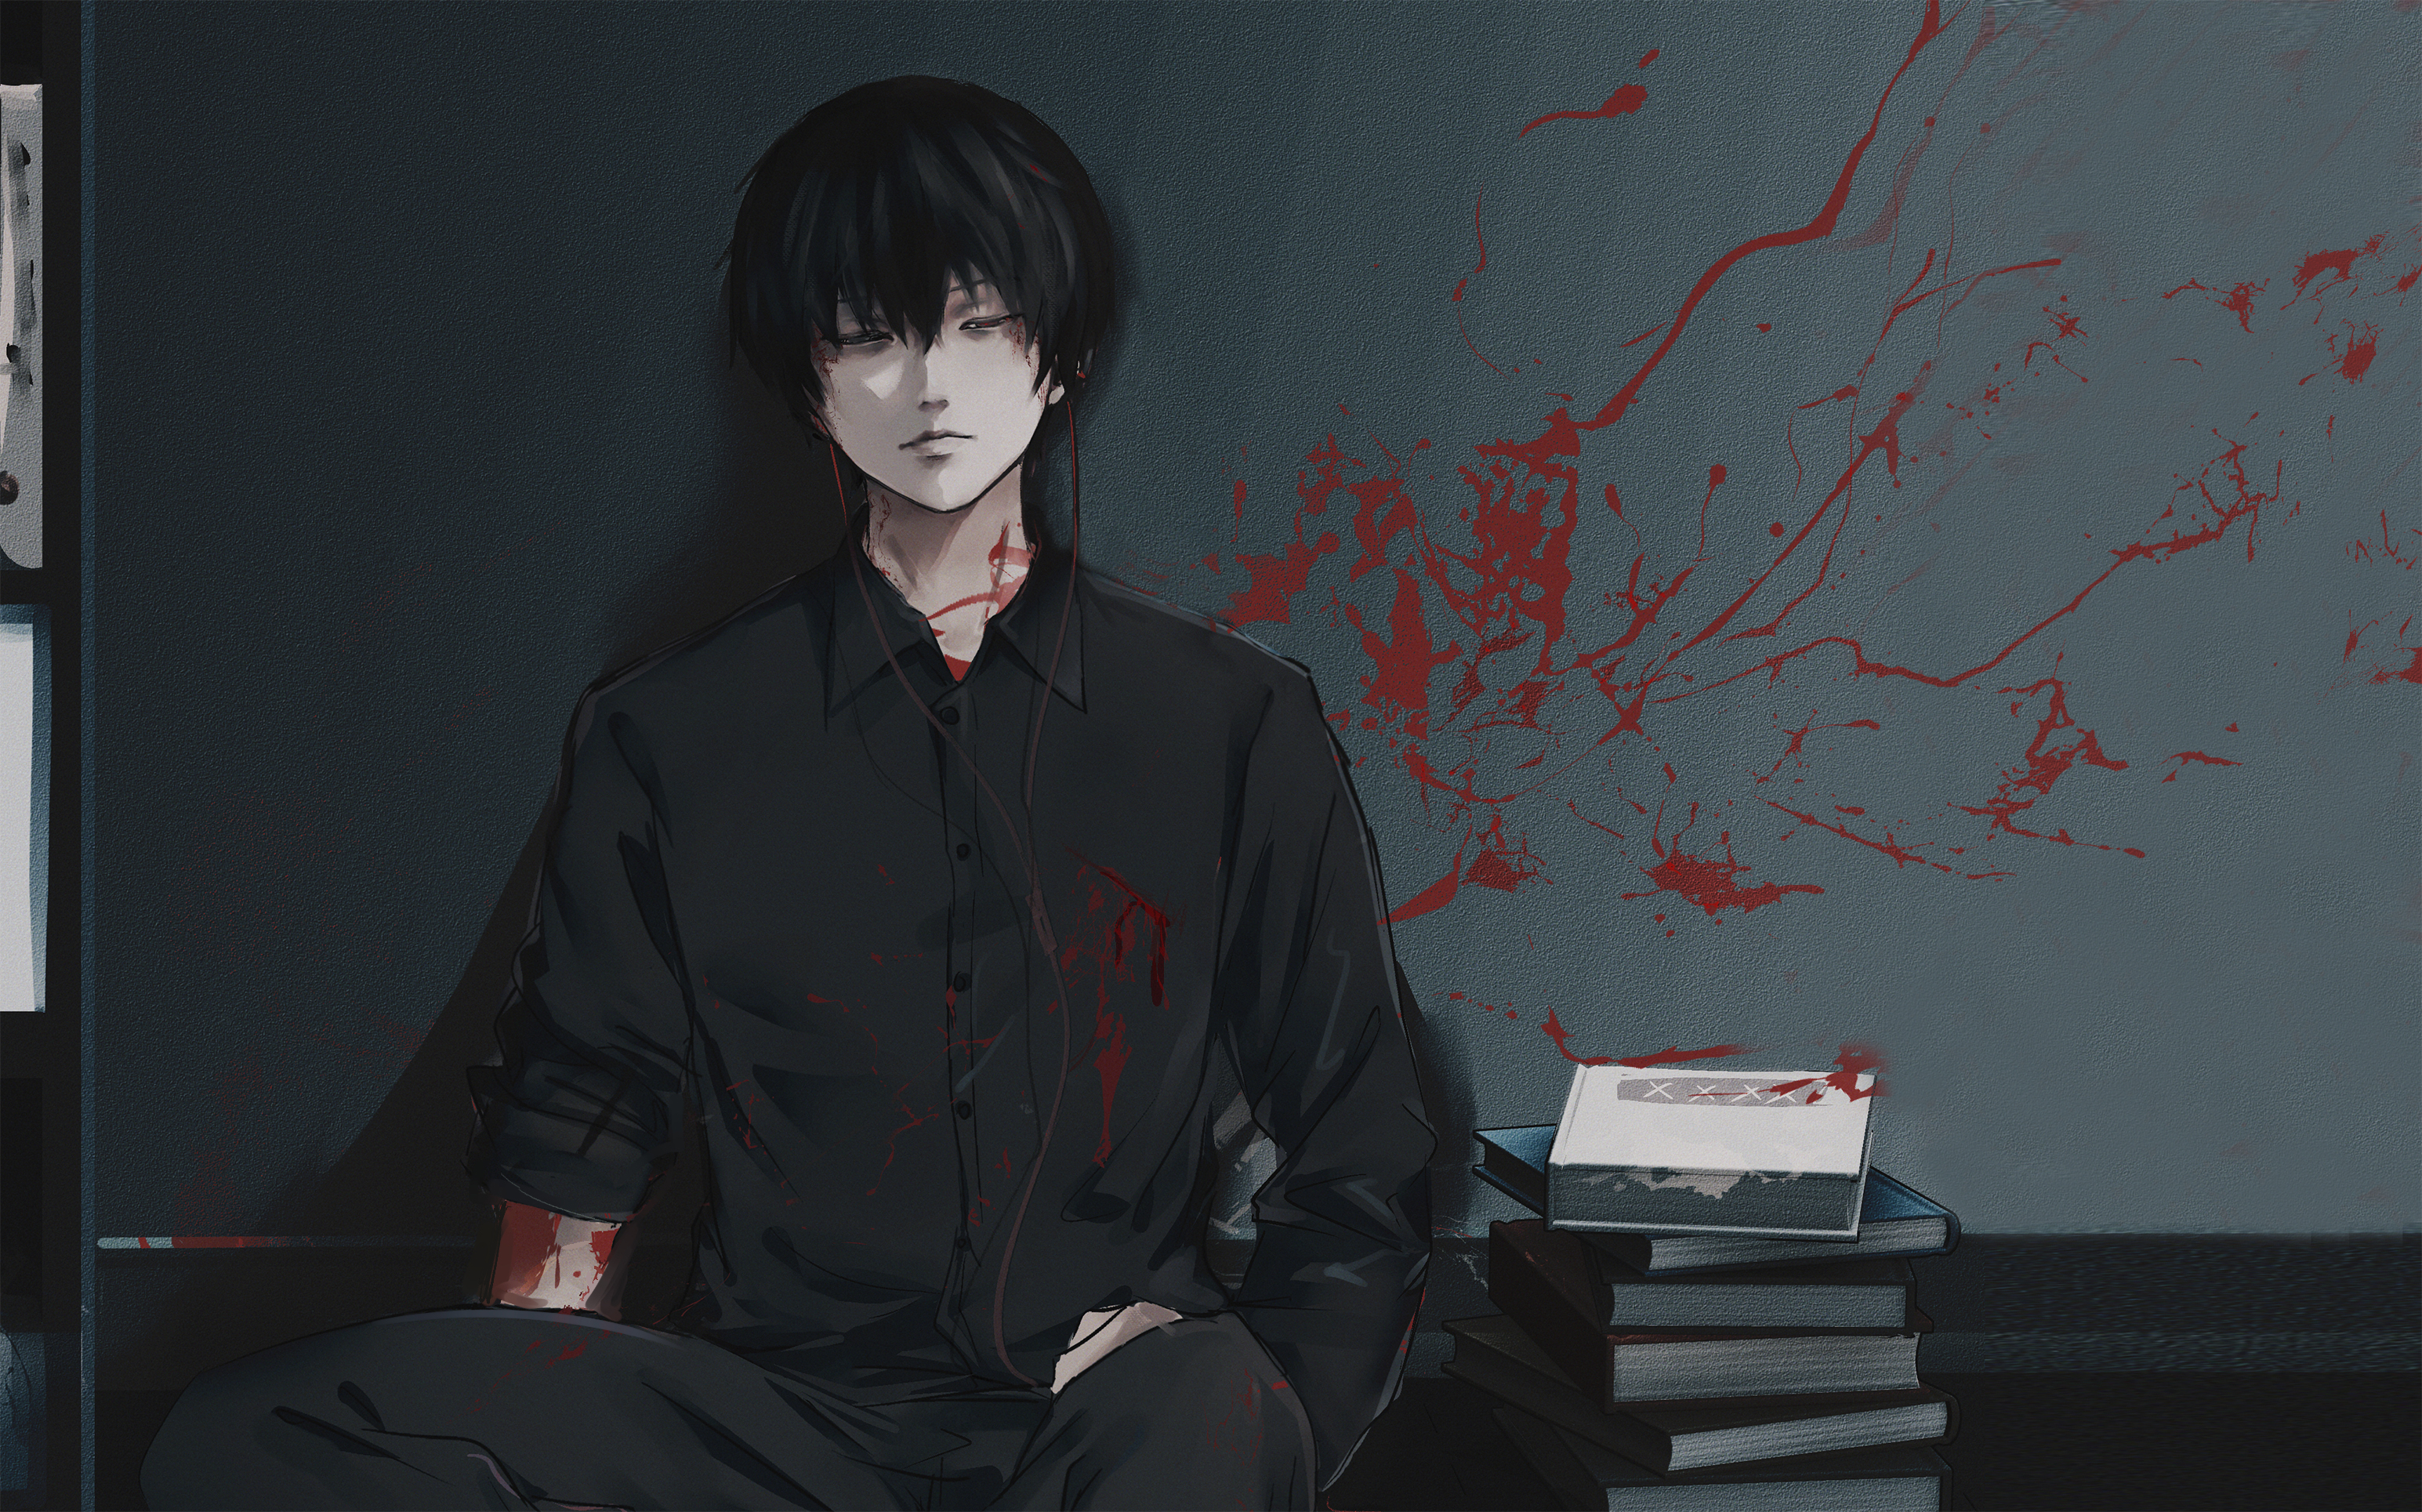 2560x1024 Ken Kaneki From Tokyo Ghoul 2560x1024 Resolution Wallpaper Hd Anime 4k Wallpapers Images Photos And Background